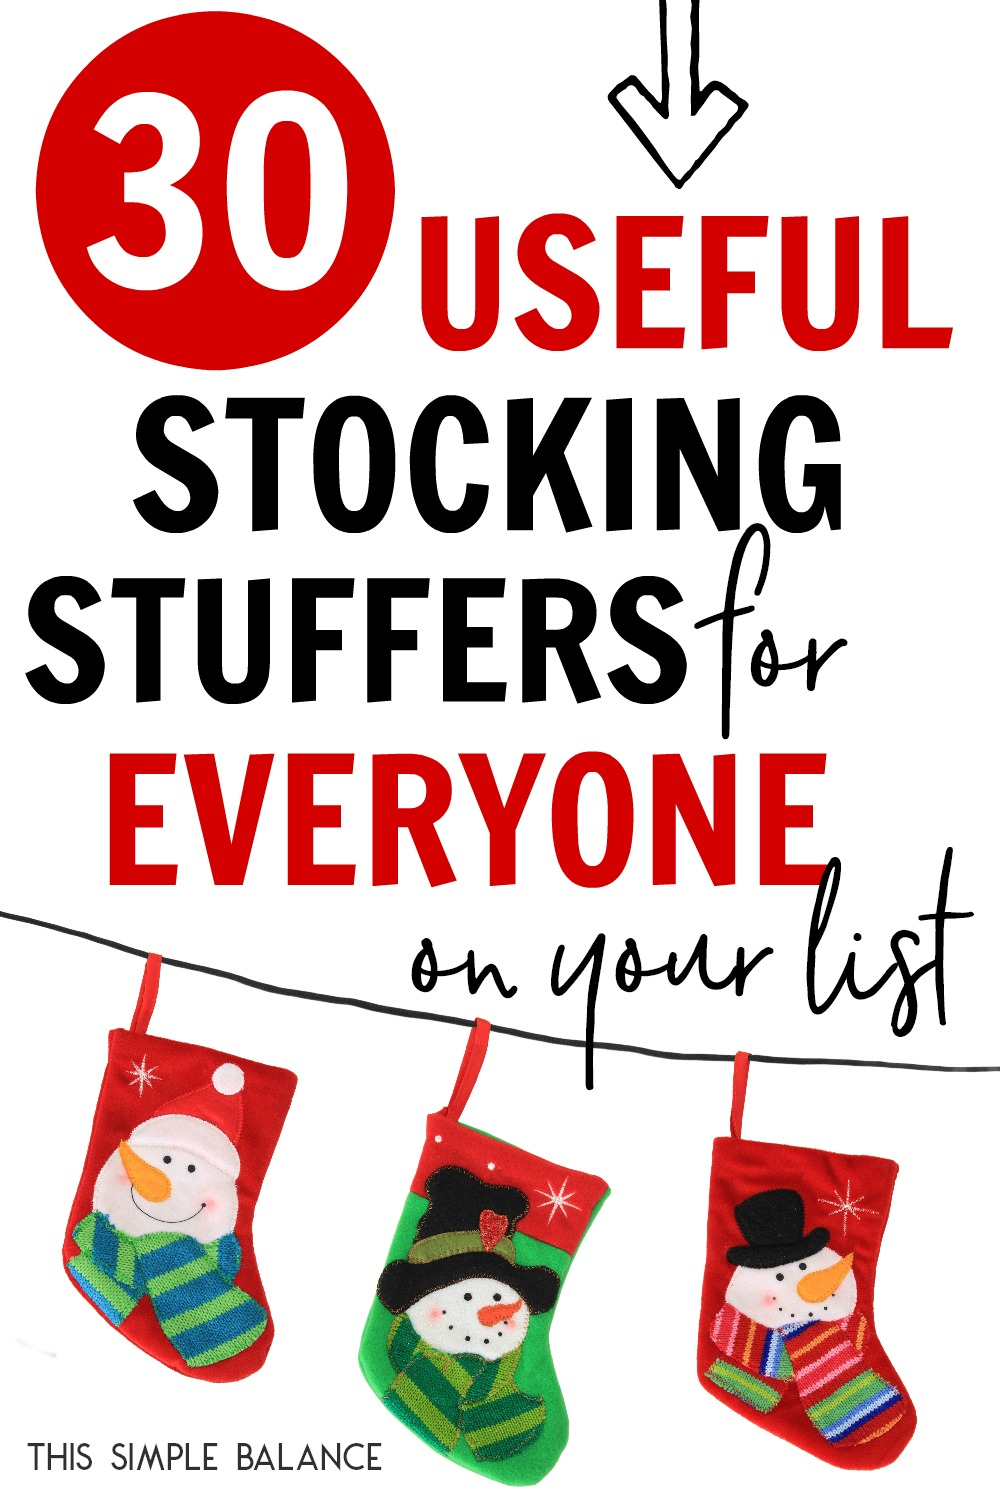 30 useful stocking stuffers ideas for kids mom dad